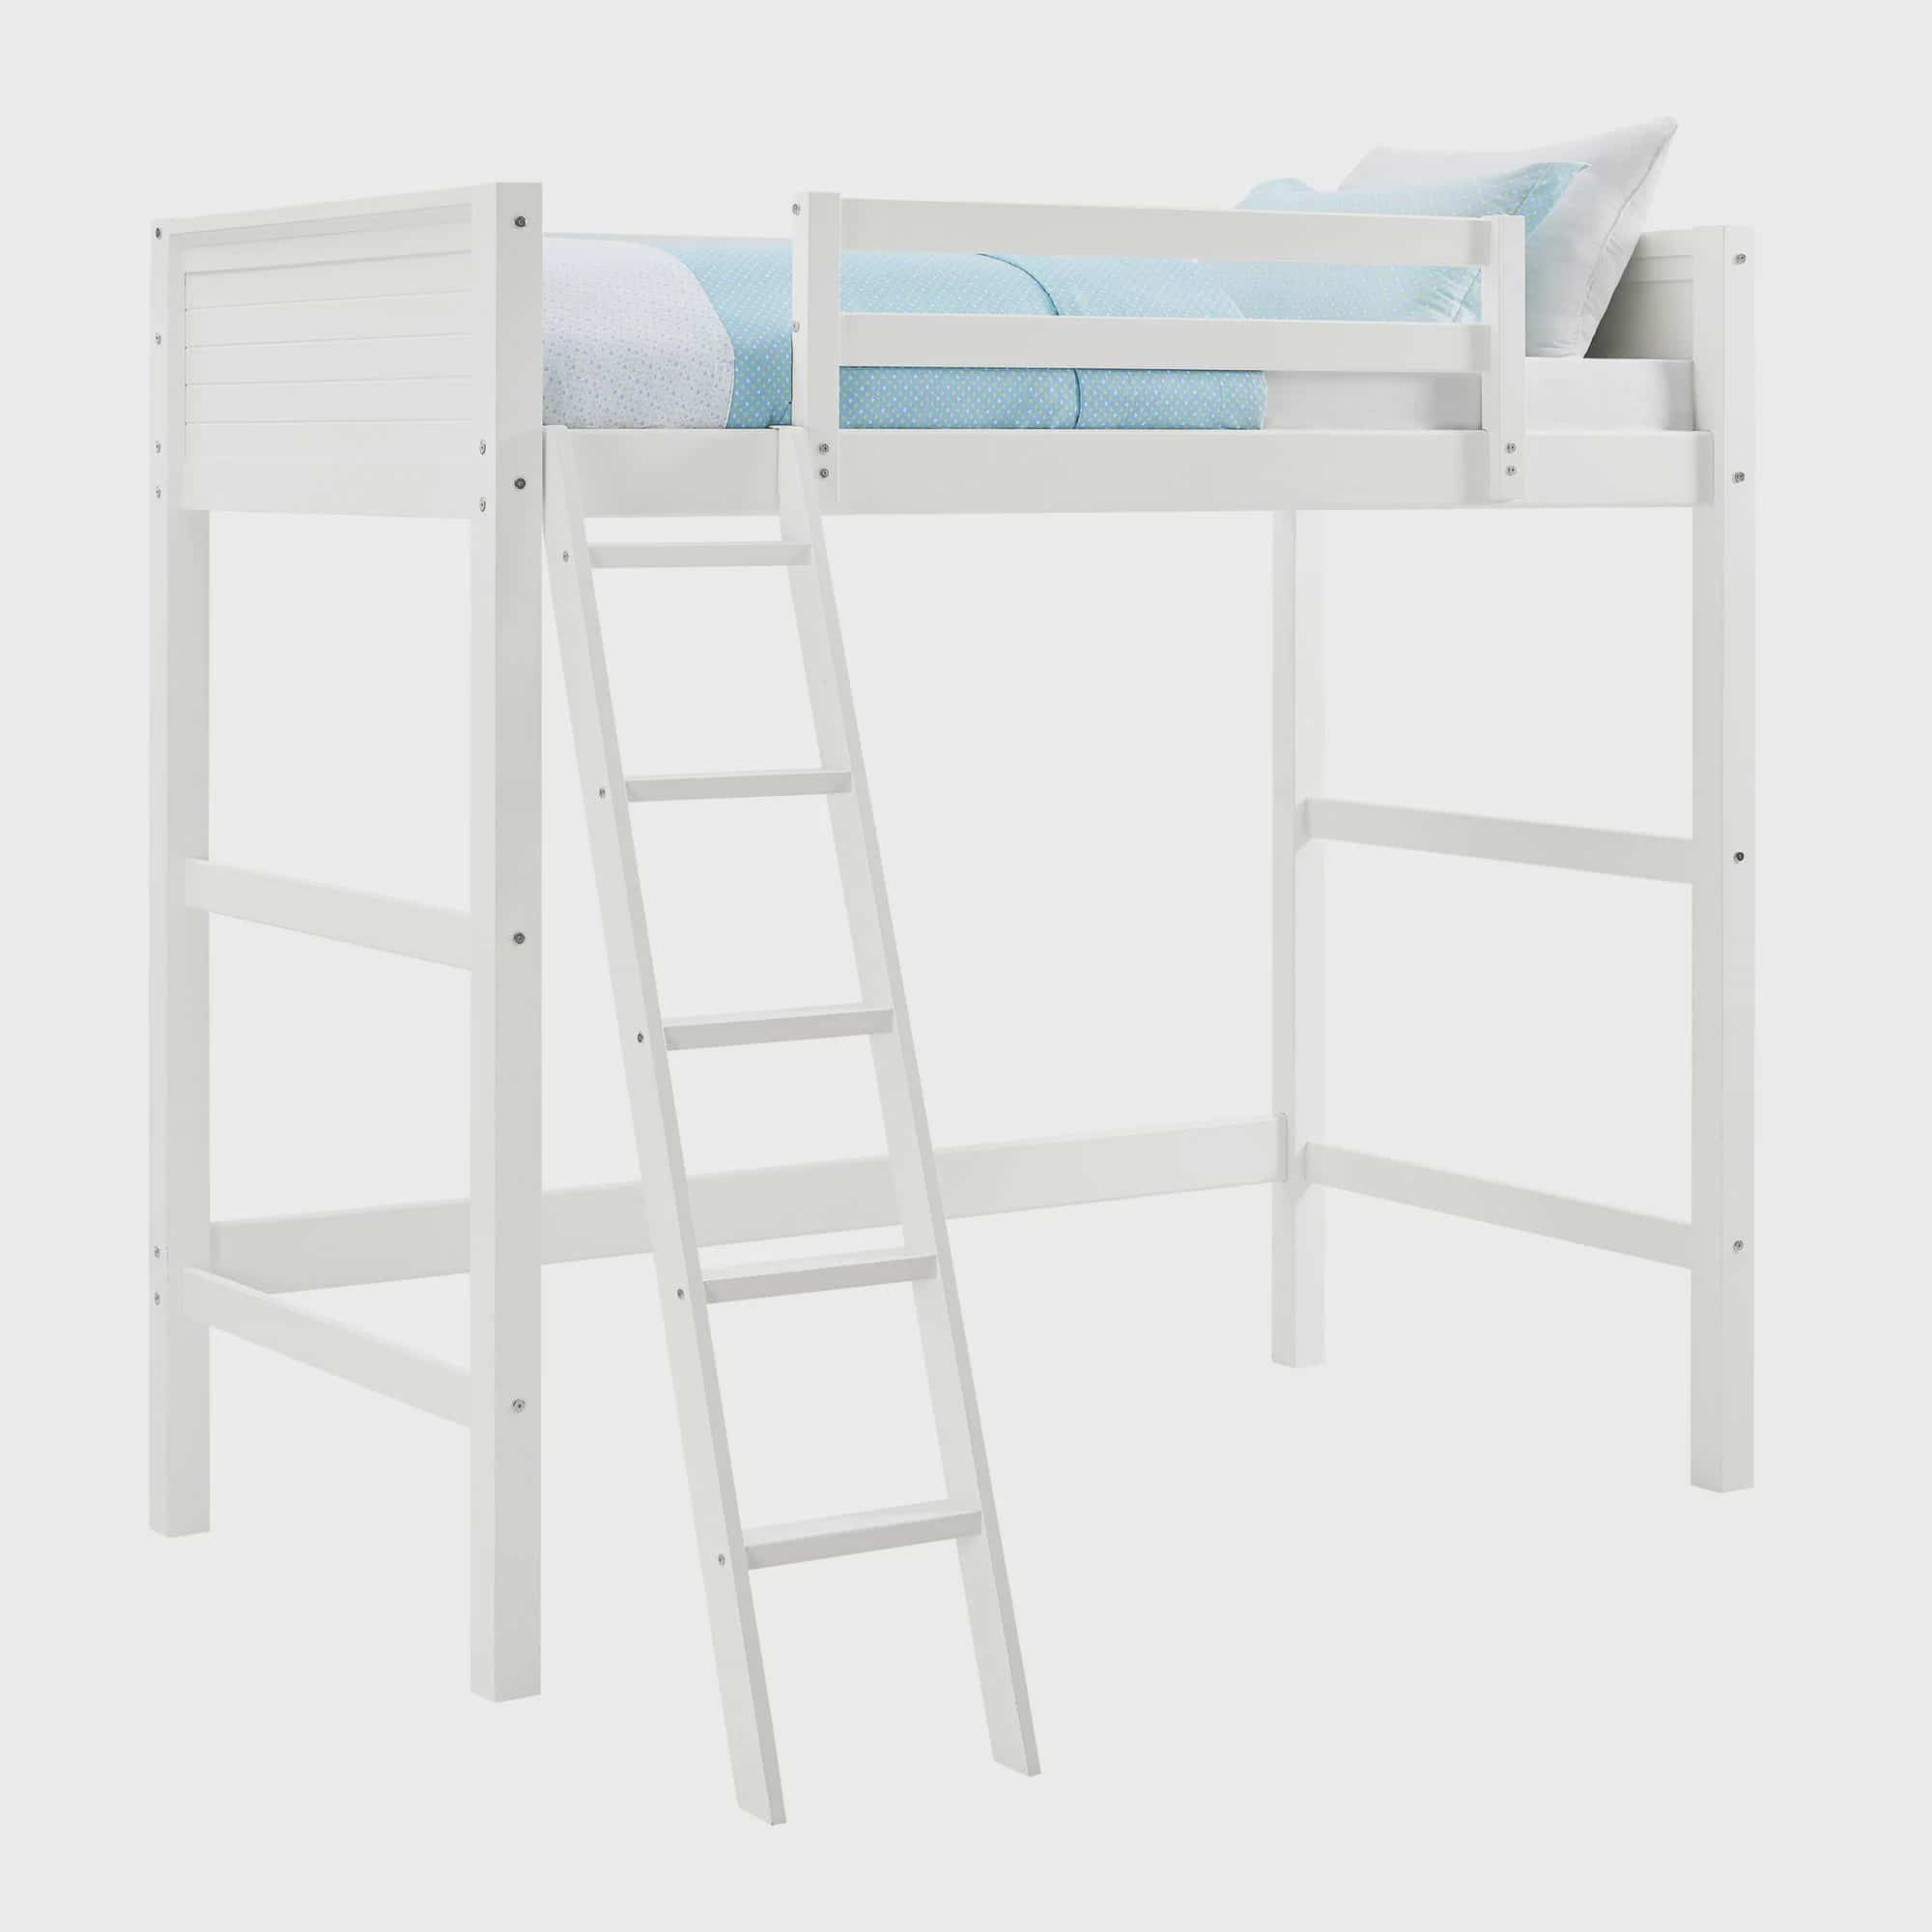 Your Zone Kids Wooden Loft Bed with Ladder, Twin, White - Walmart